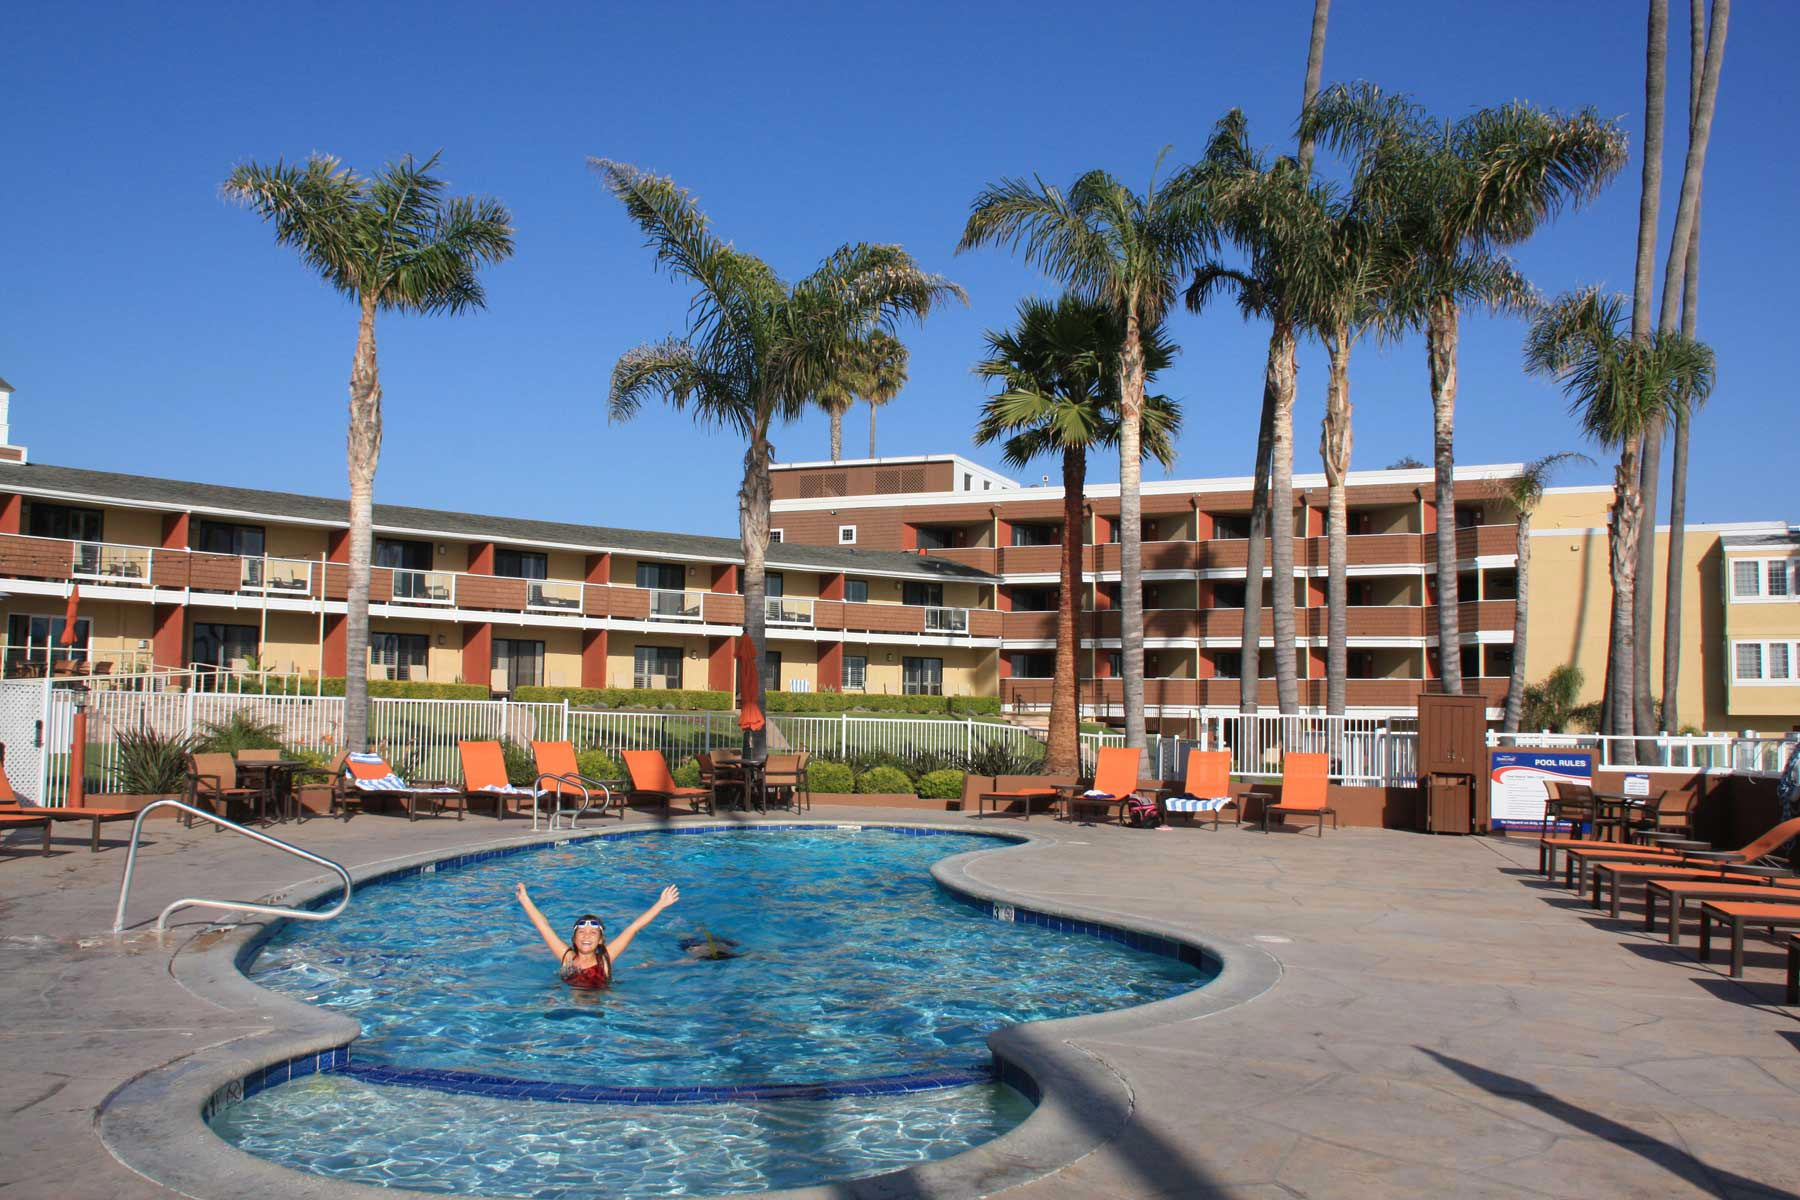 Fun Sun And Sand At Pismo Beach The Seacrest Oceanfront Hotel Marin Mommies